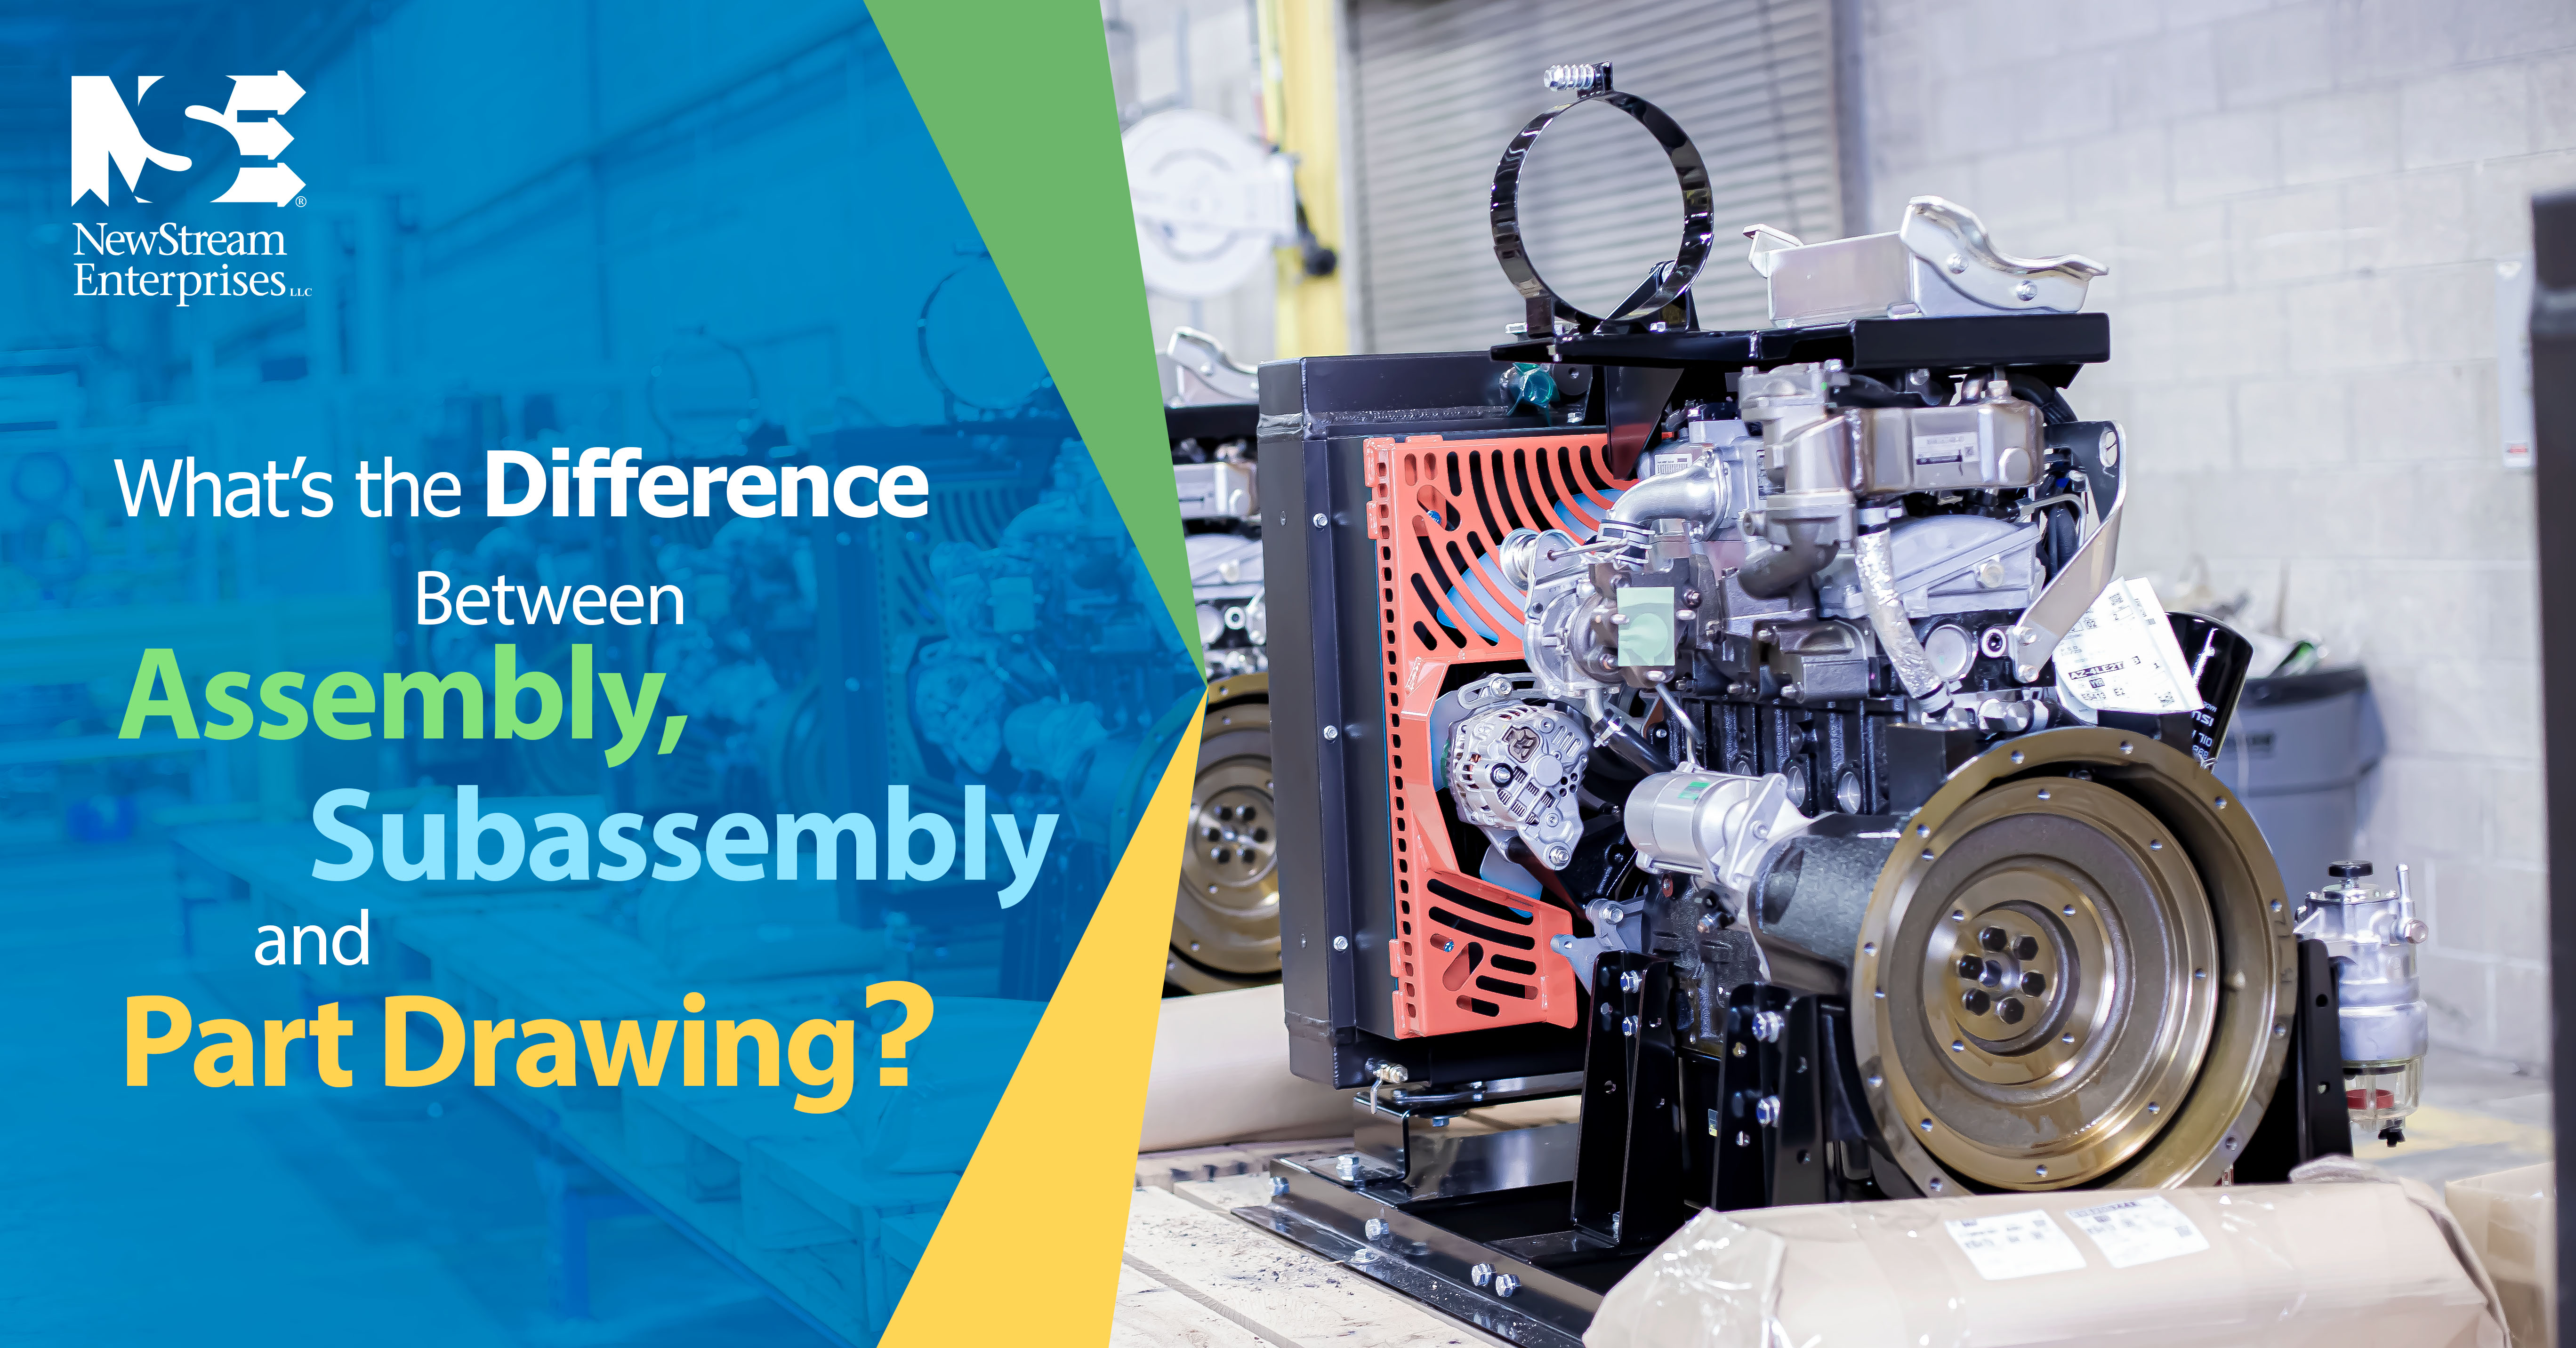 What's difference between assembly, subassembly, and part drawing?